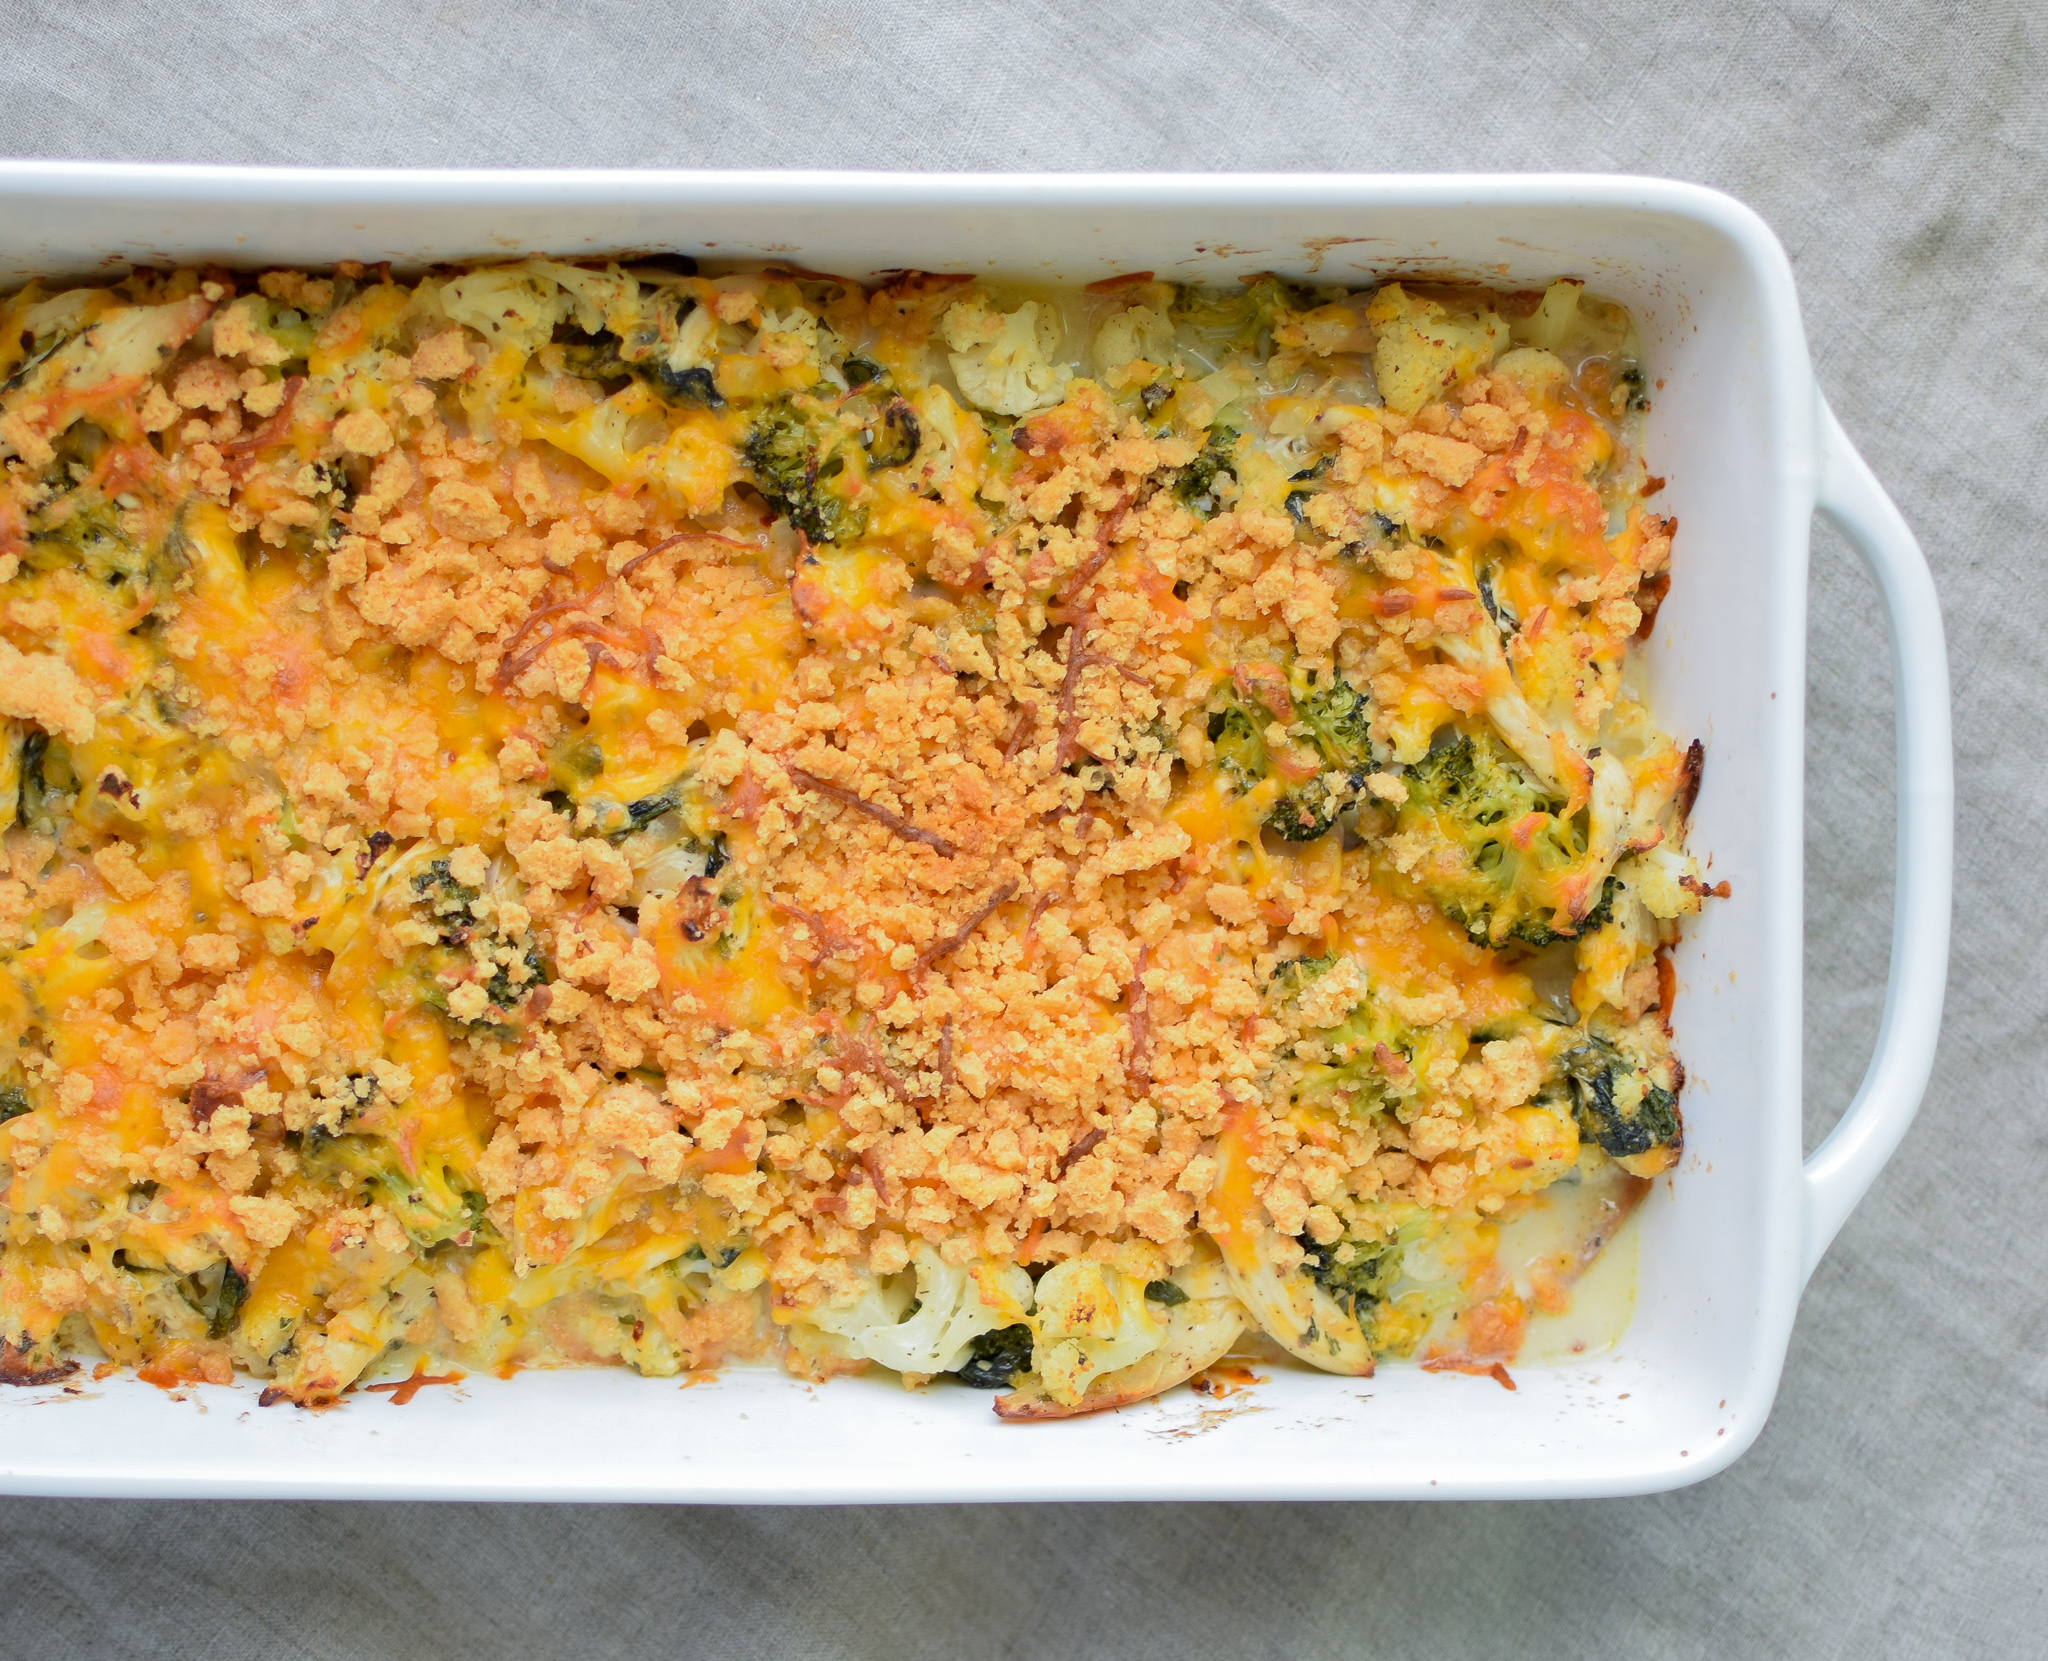 Veggie Loaded Rotisserie Chicken Casserole recipe - Delicious juicy chicken baked with broccoli, cauliflower, spinach, greek yogurt and more! Healthy and easy, from ProjectMealPlan.com